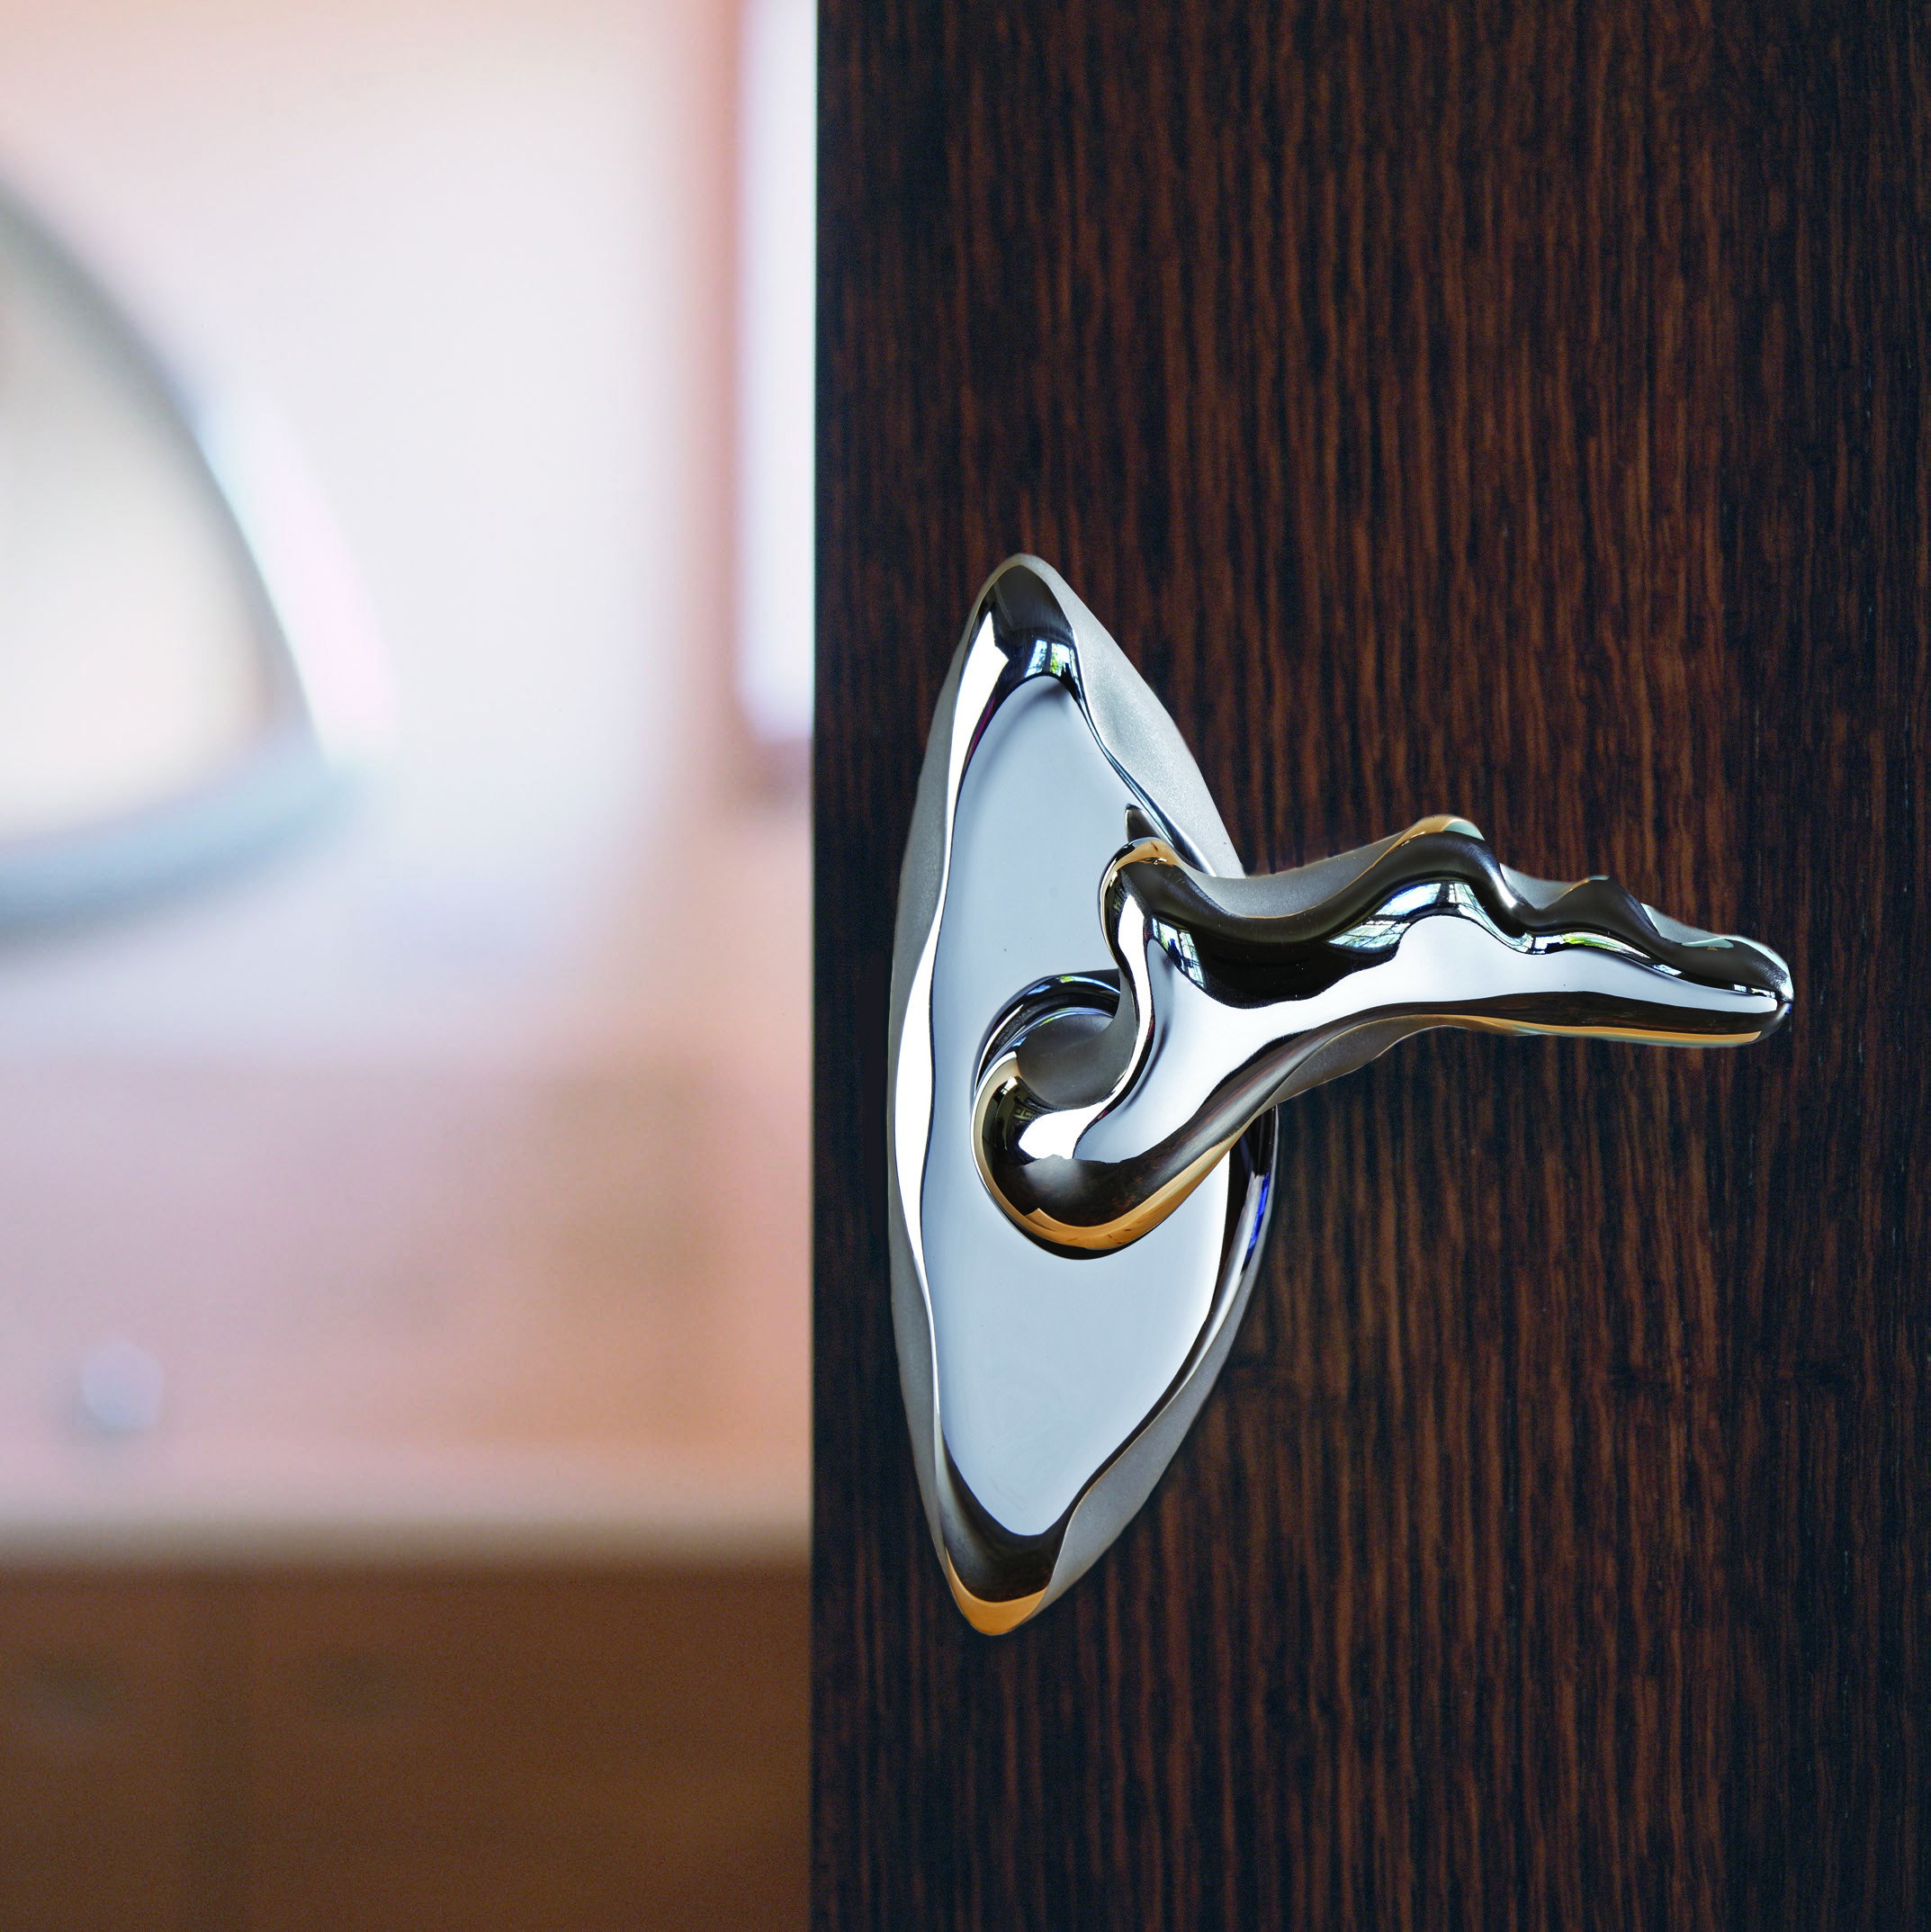 Modern steel door handle loc.jpg